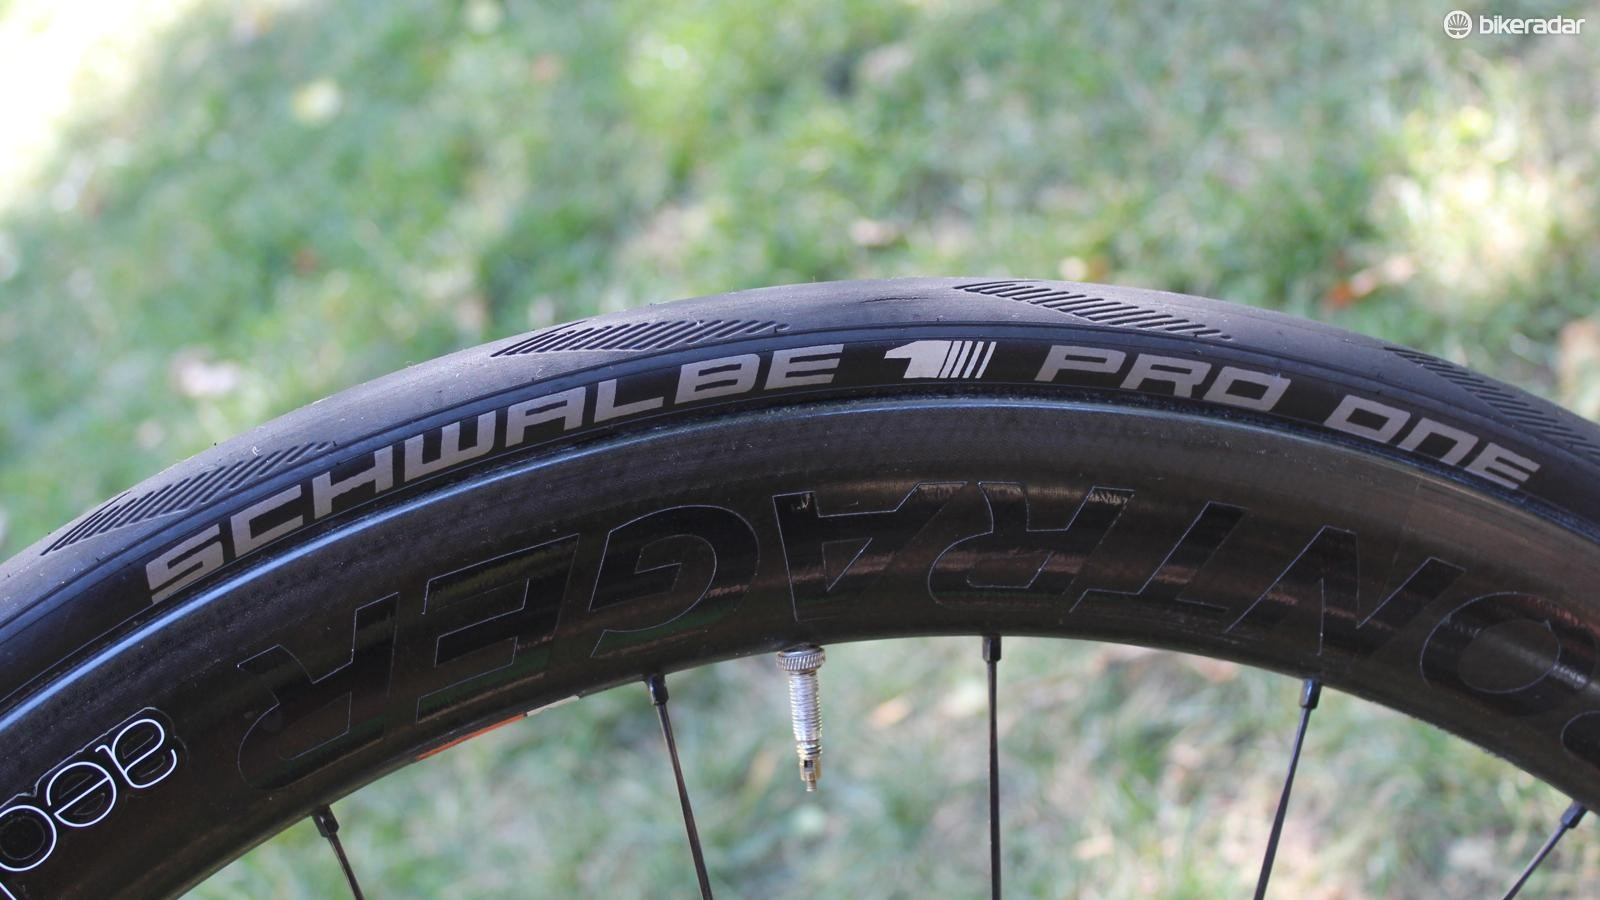 The Pro One is our favourite road tubeless tire